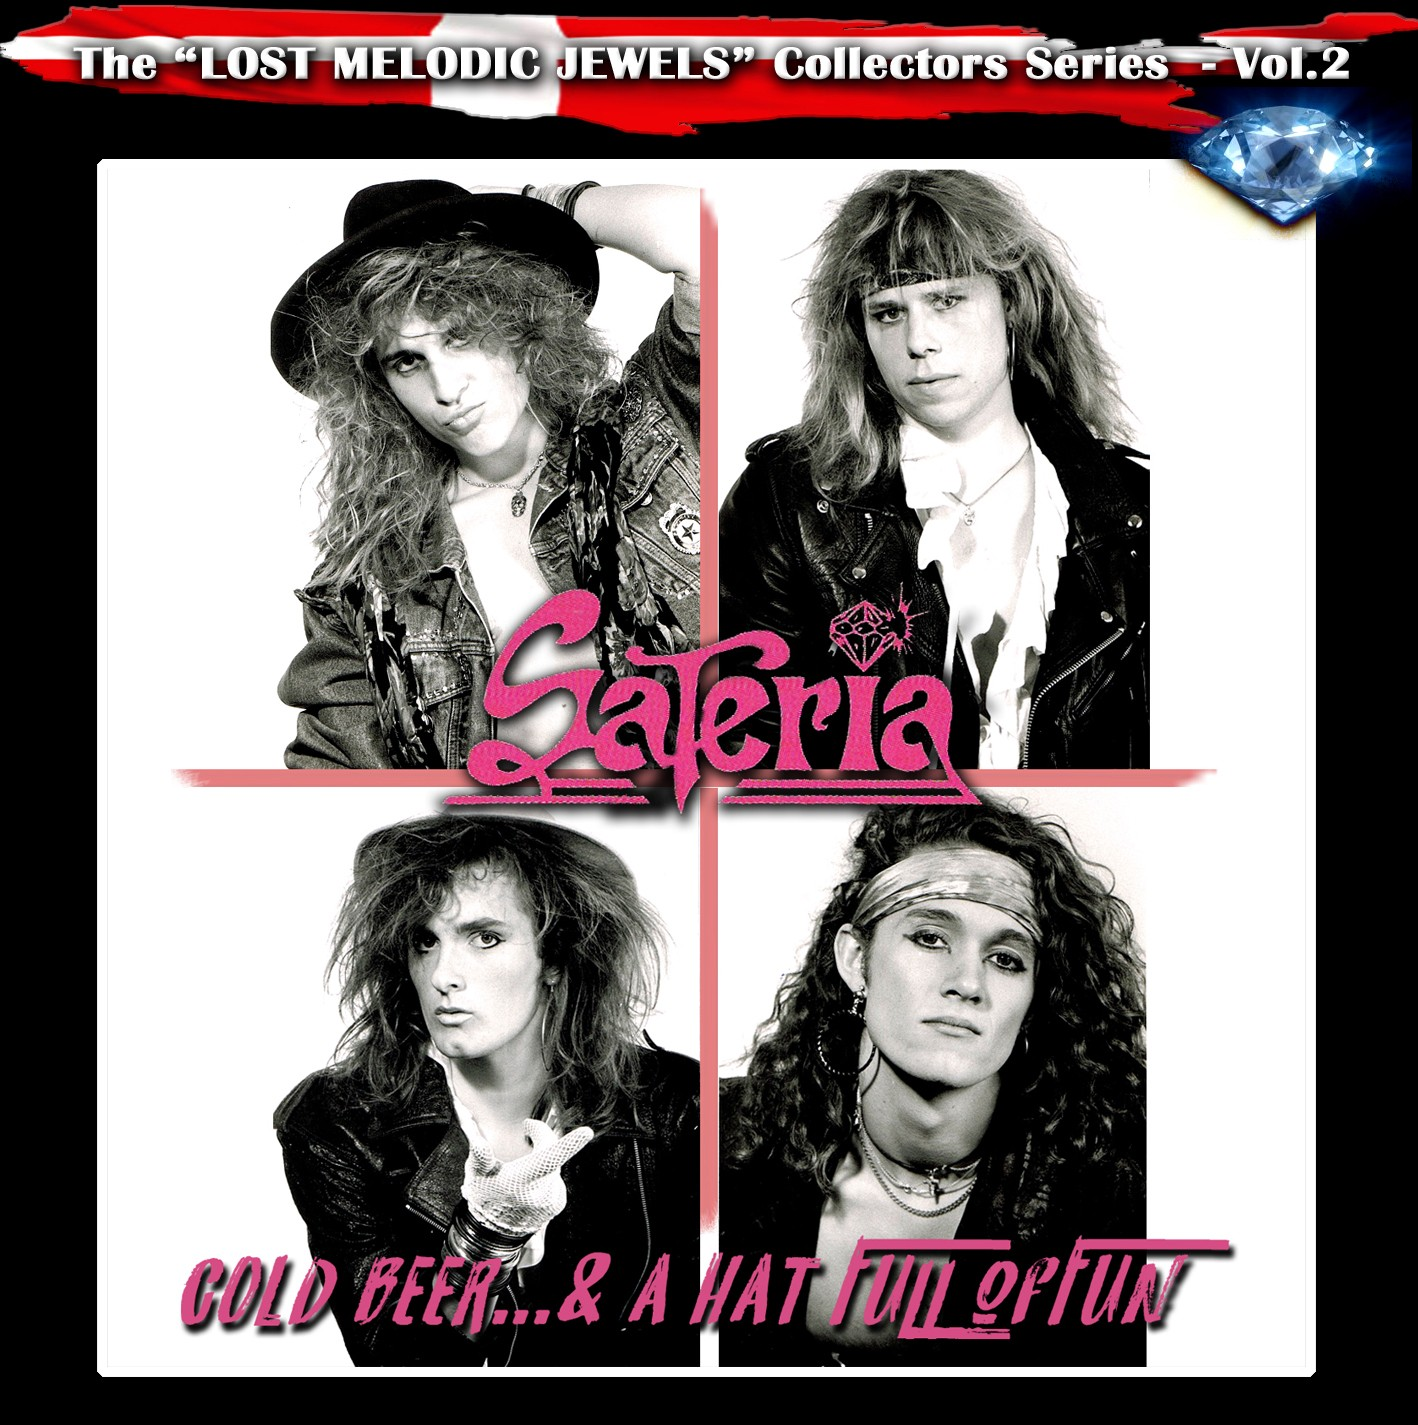 SATERIA - Cold Beer...& A Hat Full Of Fun (digitally remastered)